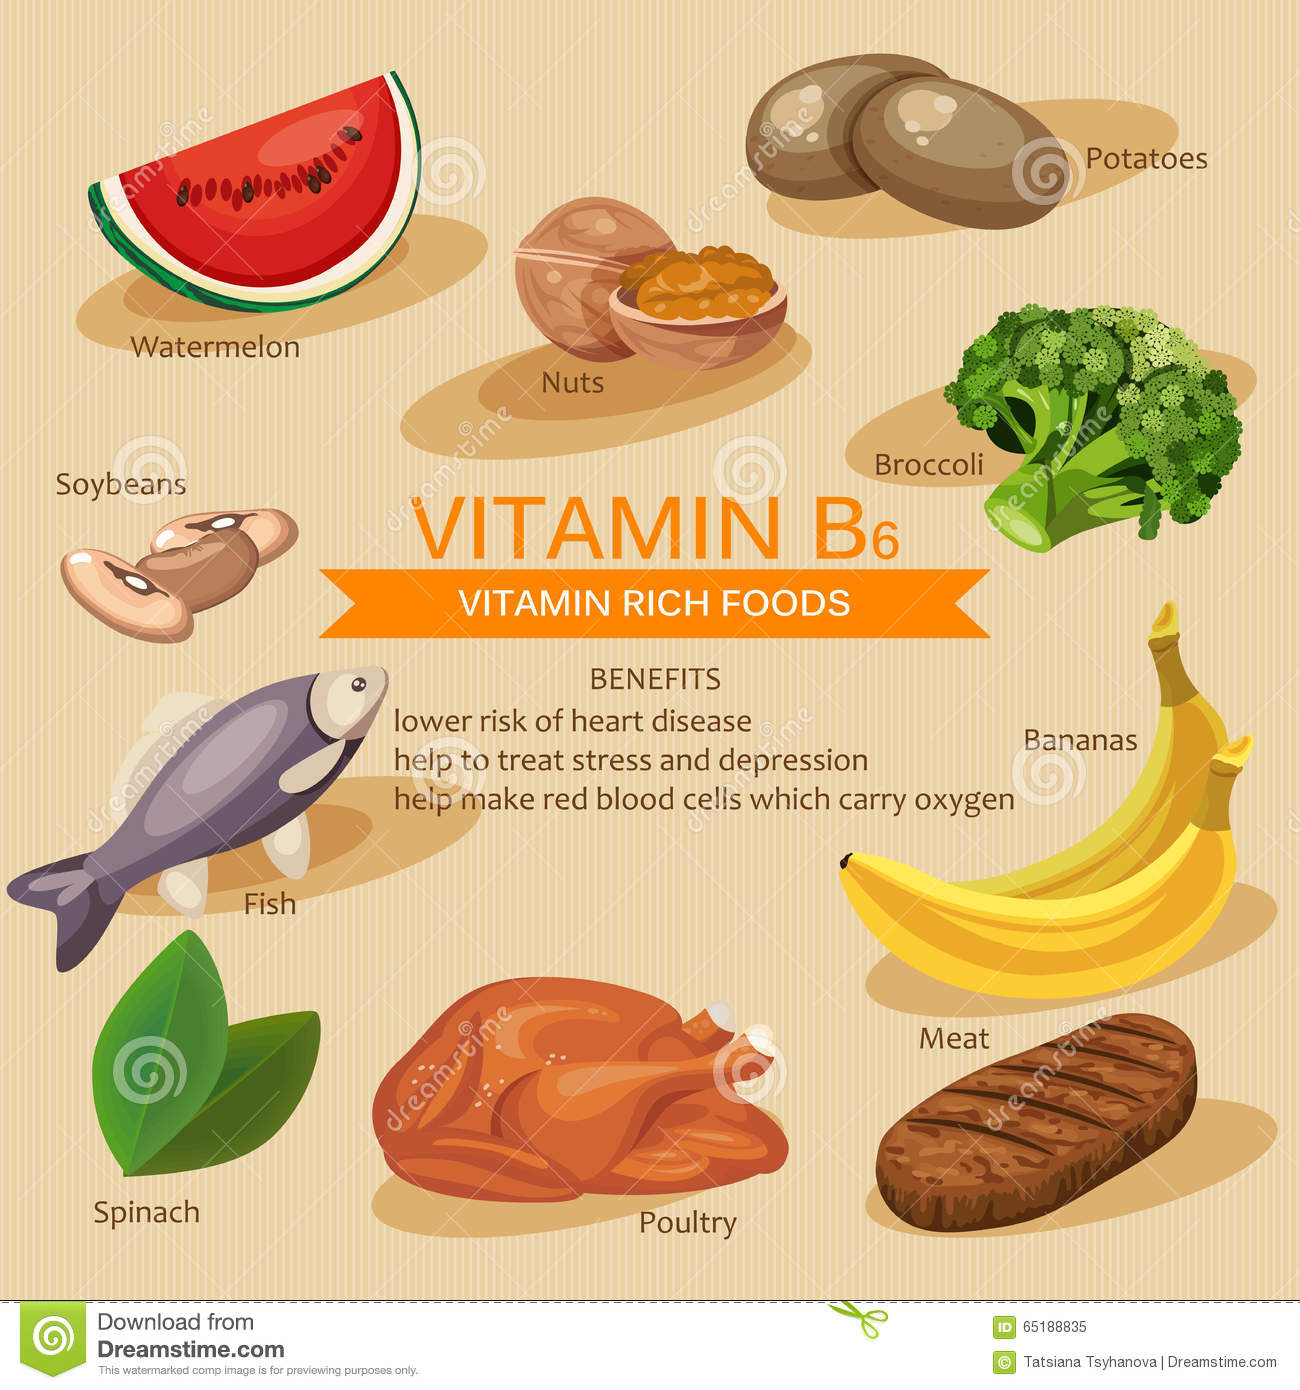 Foods Containing B